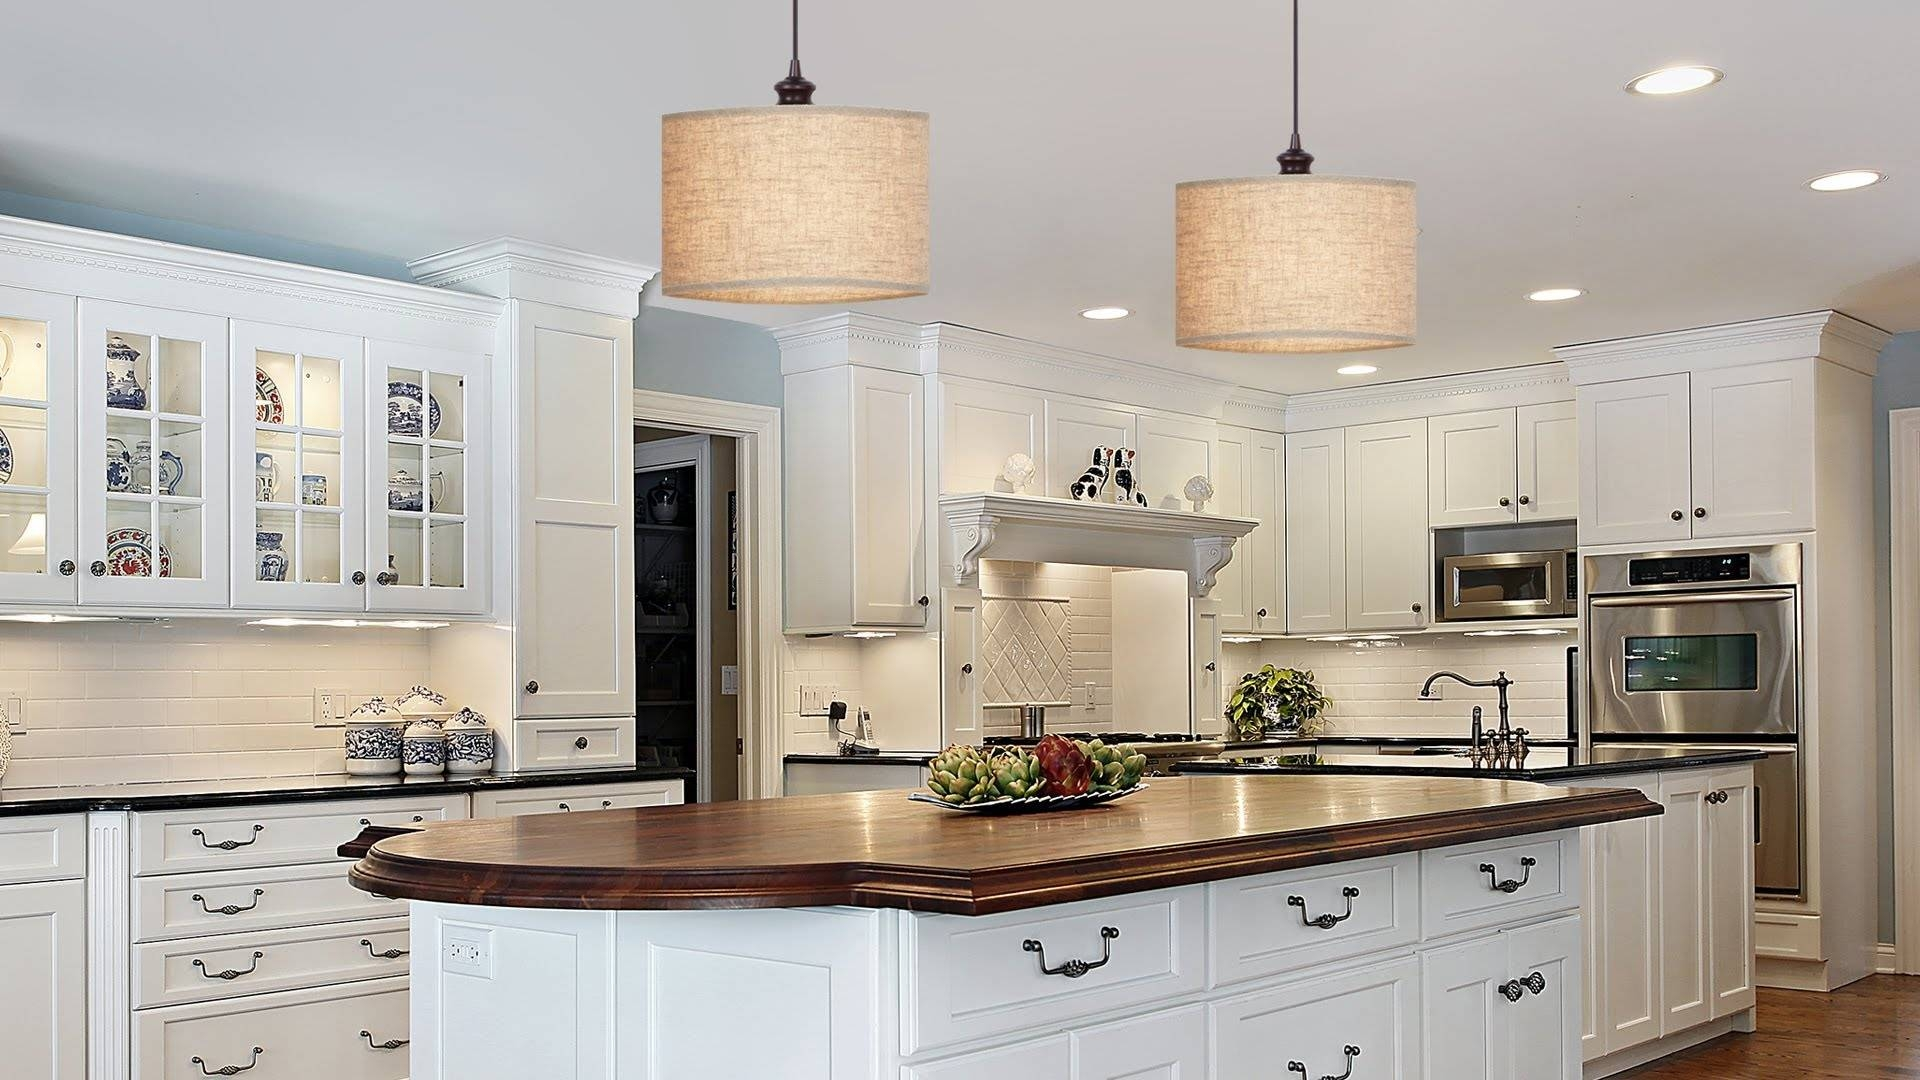 Convert Recessed Lights Into Pendant Lights - Youtube regarding Recessed Lights to Pendant Lights (Image 4 of 15)